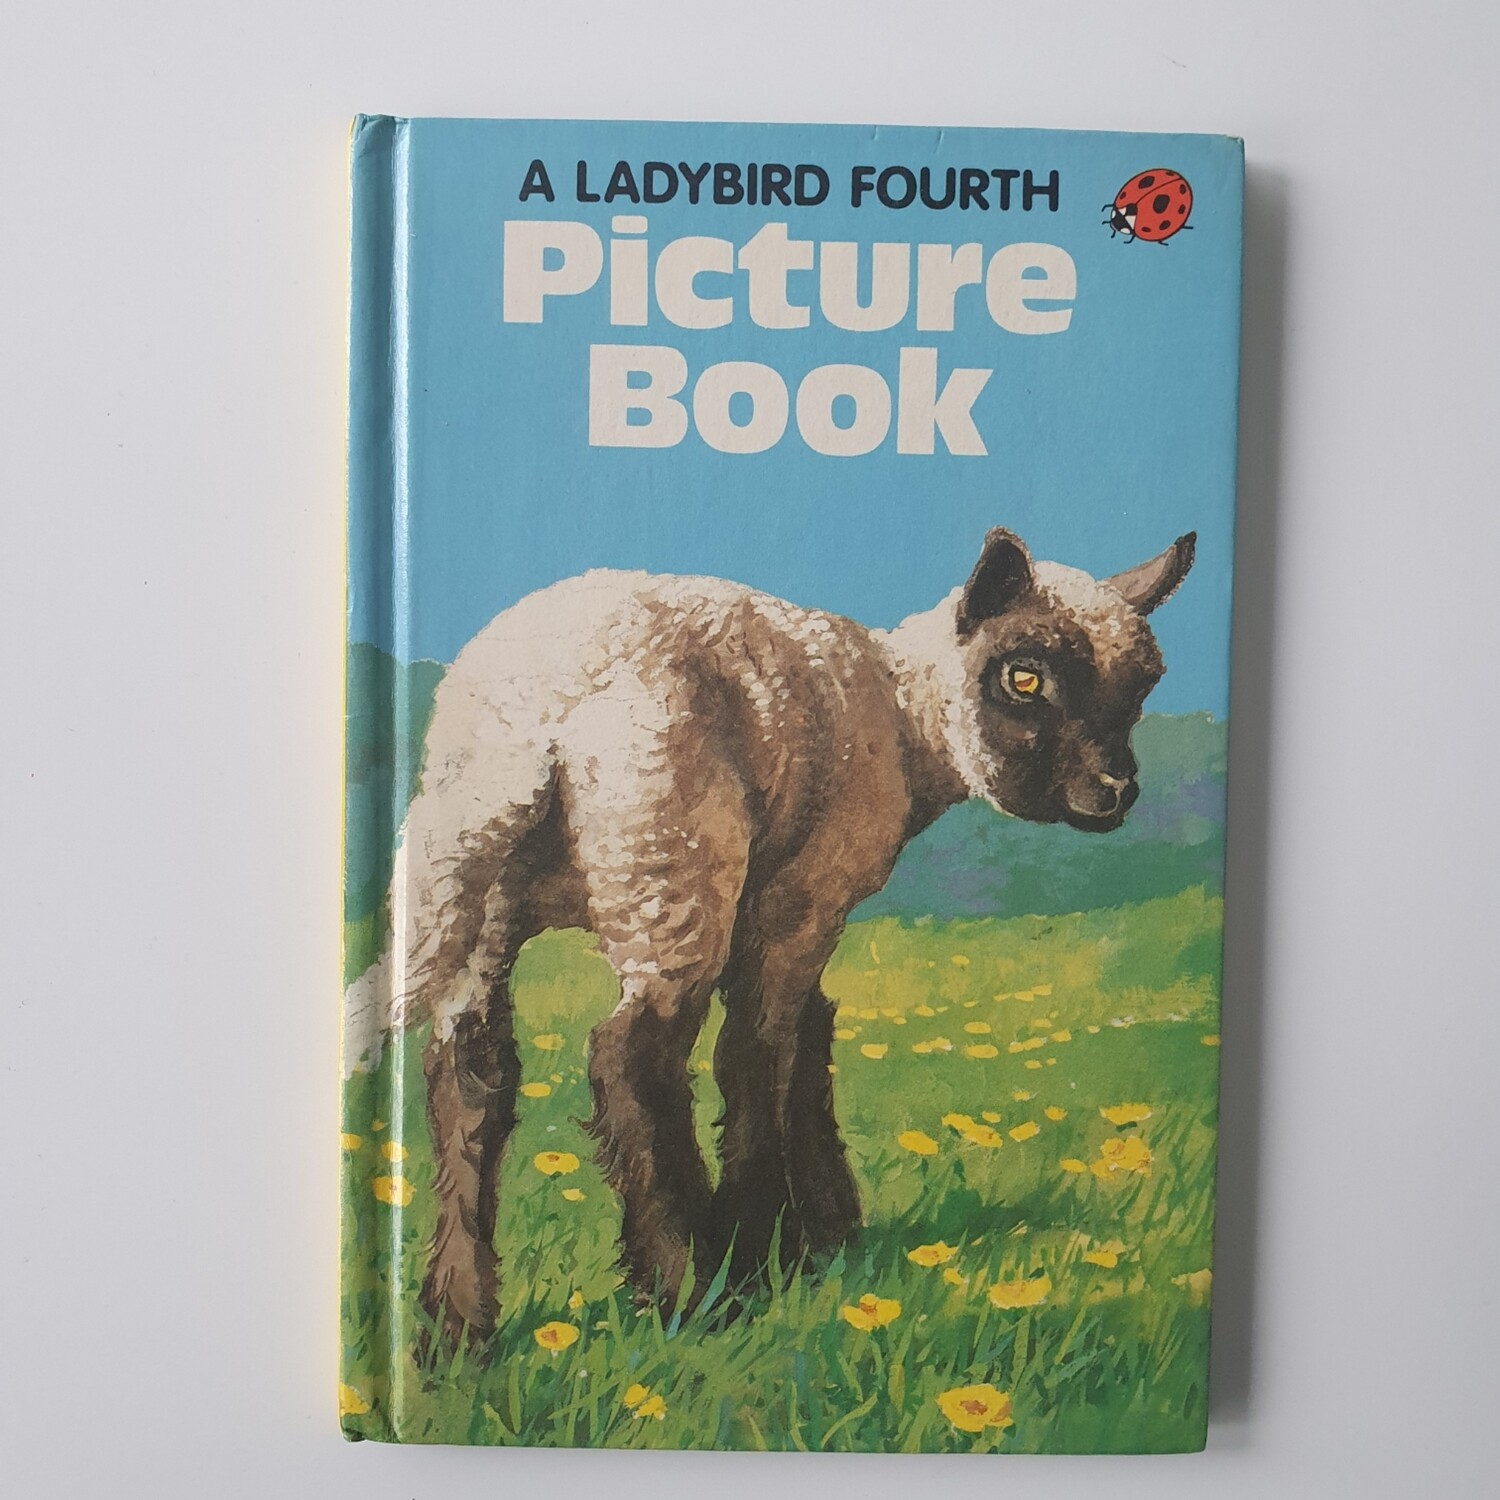 Lamb picture book Plain Paper notebook - READY TO SHIP Ladybird Book